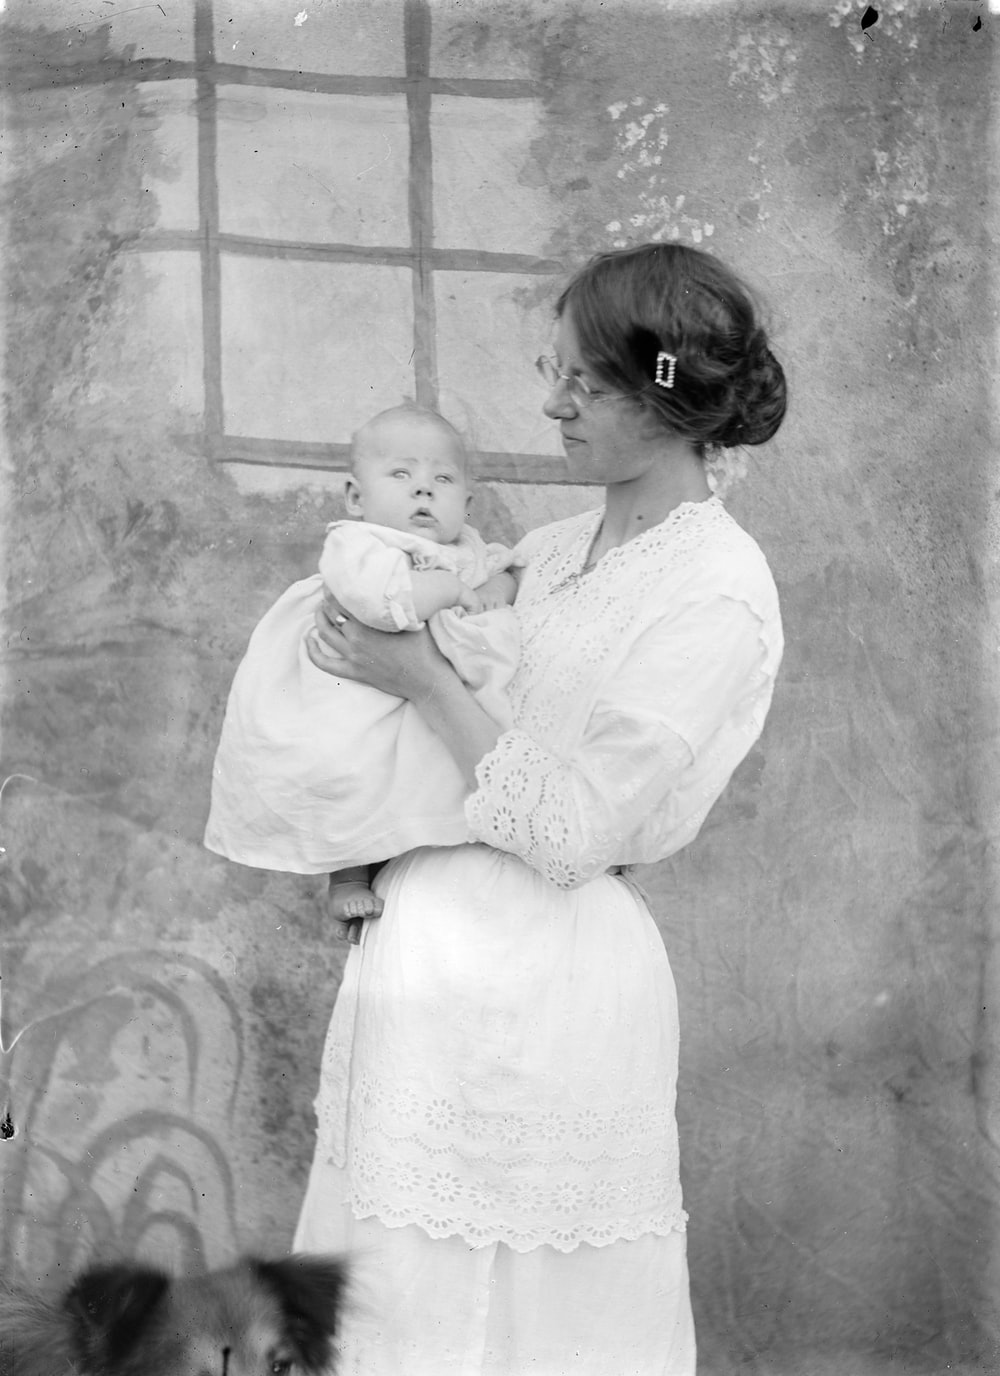 grayscale photo of woman in white dress carrying baby